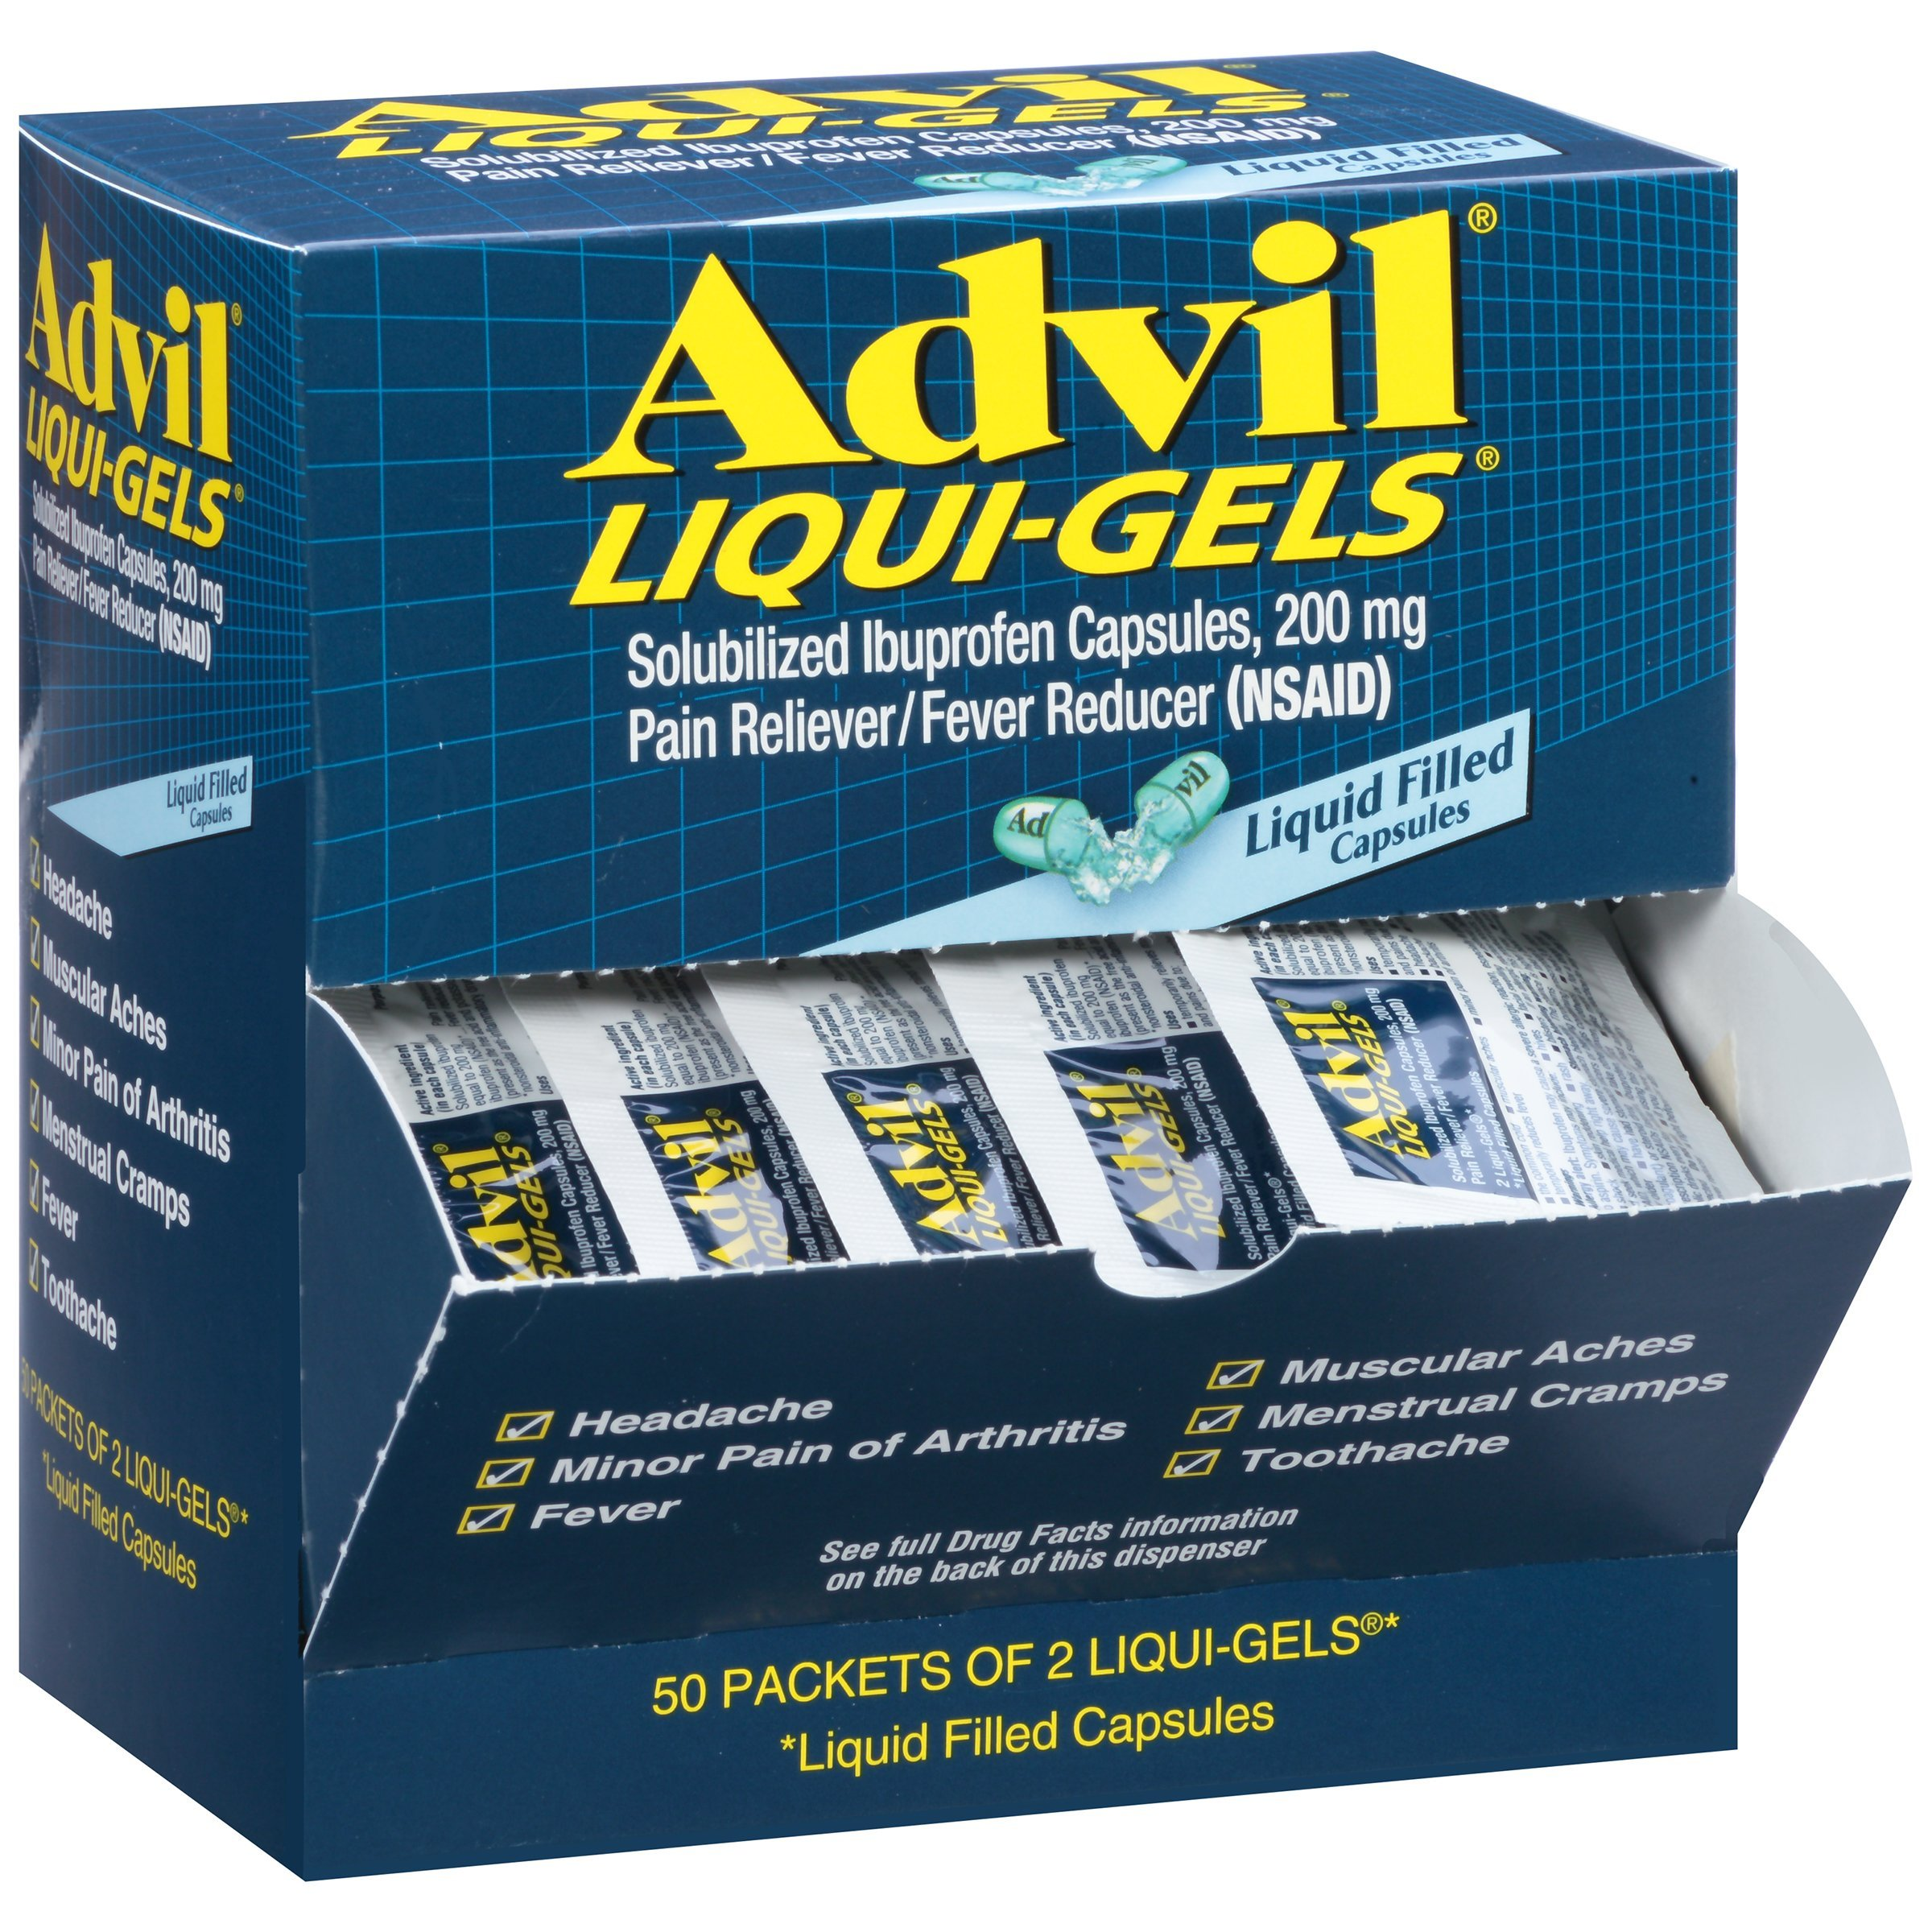 Advil Liqui-Gels Pain Reliever/Fever Reducer Liquid Filled Capsule Refill, 200mg Ibuprofen, Temporary Pain Relief (50 Packets of 2 Capsules)